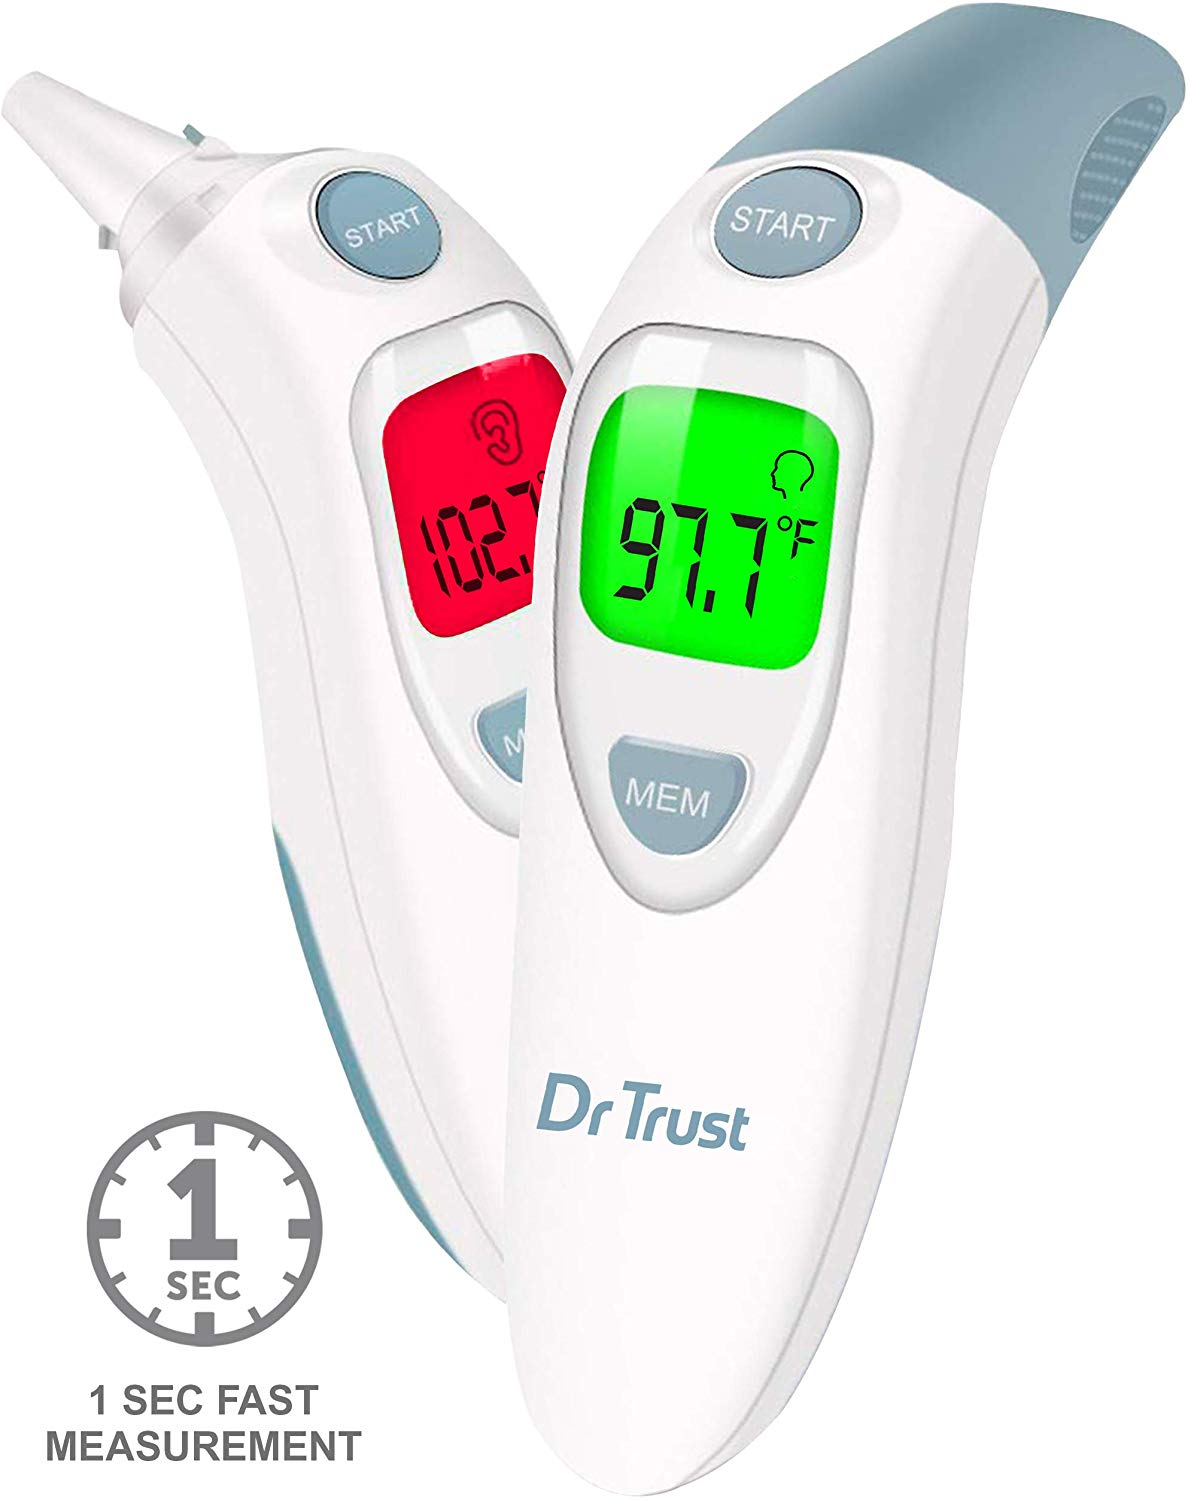 5 Best Thermometers In India For